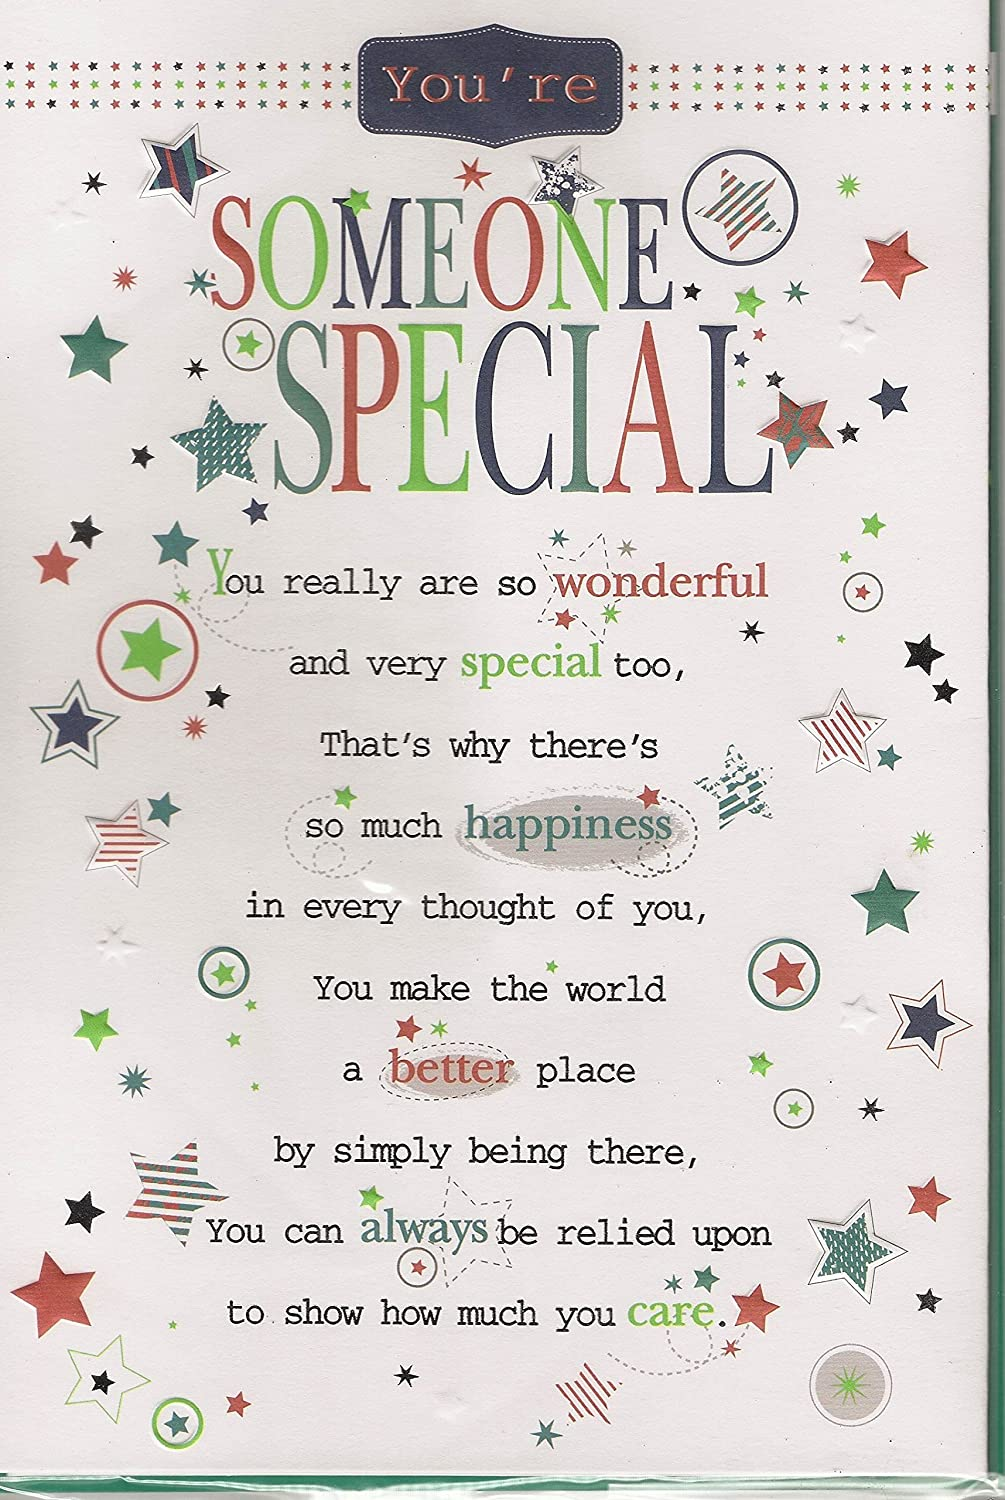 Someone Special Birthday Card Youre Someone Special Male or – Special Birthday Cards for Someone Special